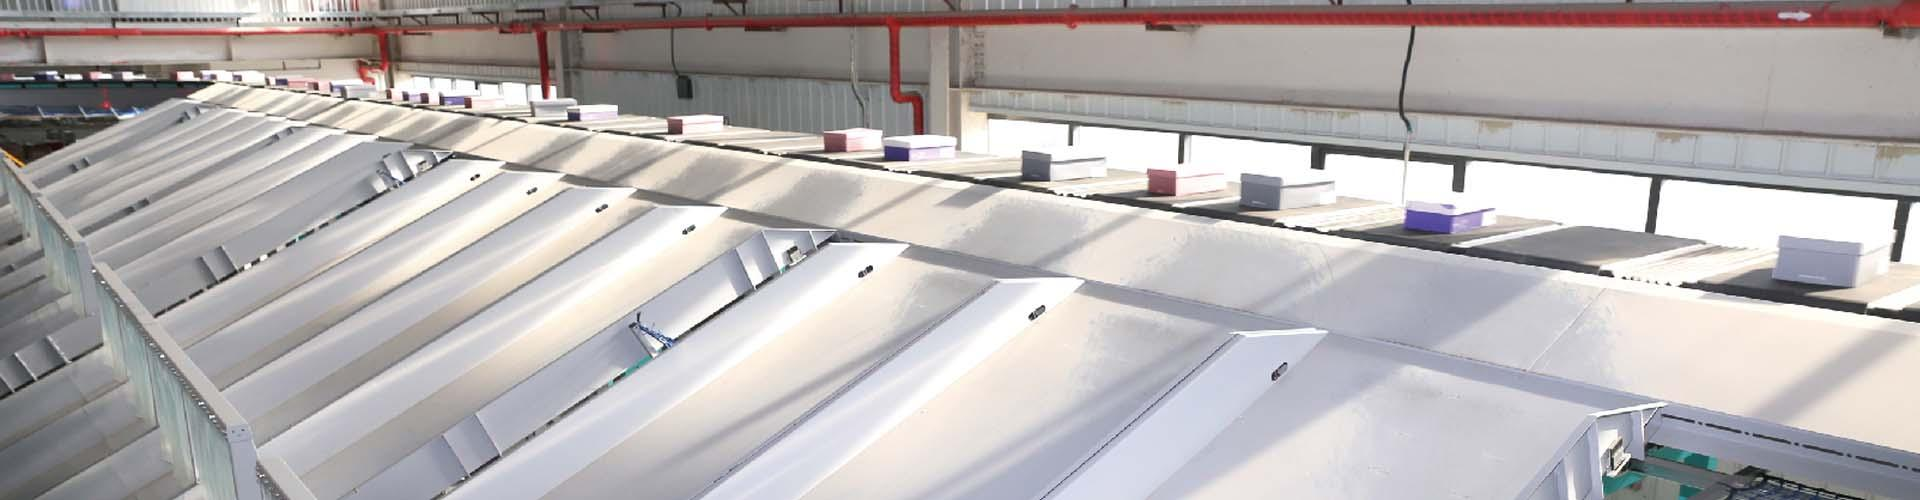 DARE DCBS-S Horizontal Cross Belt Sorter